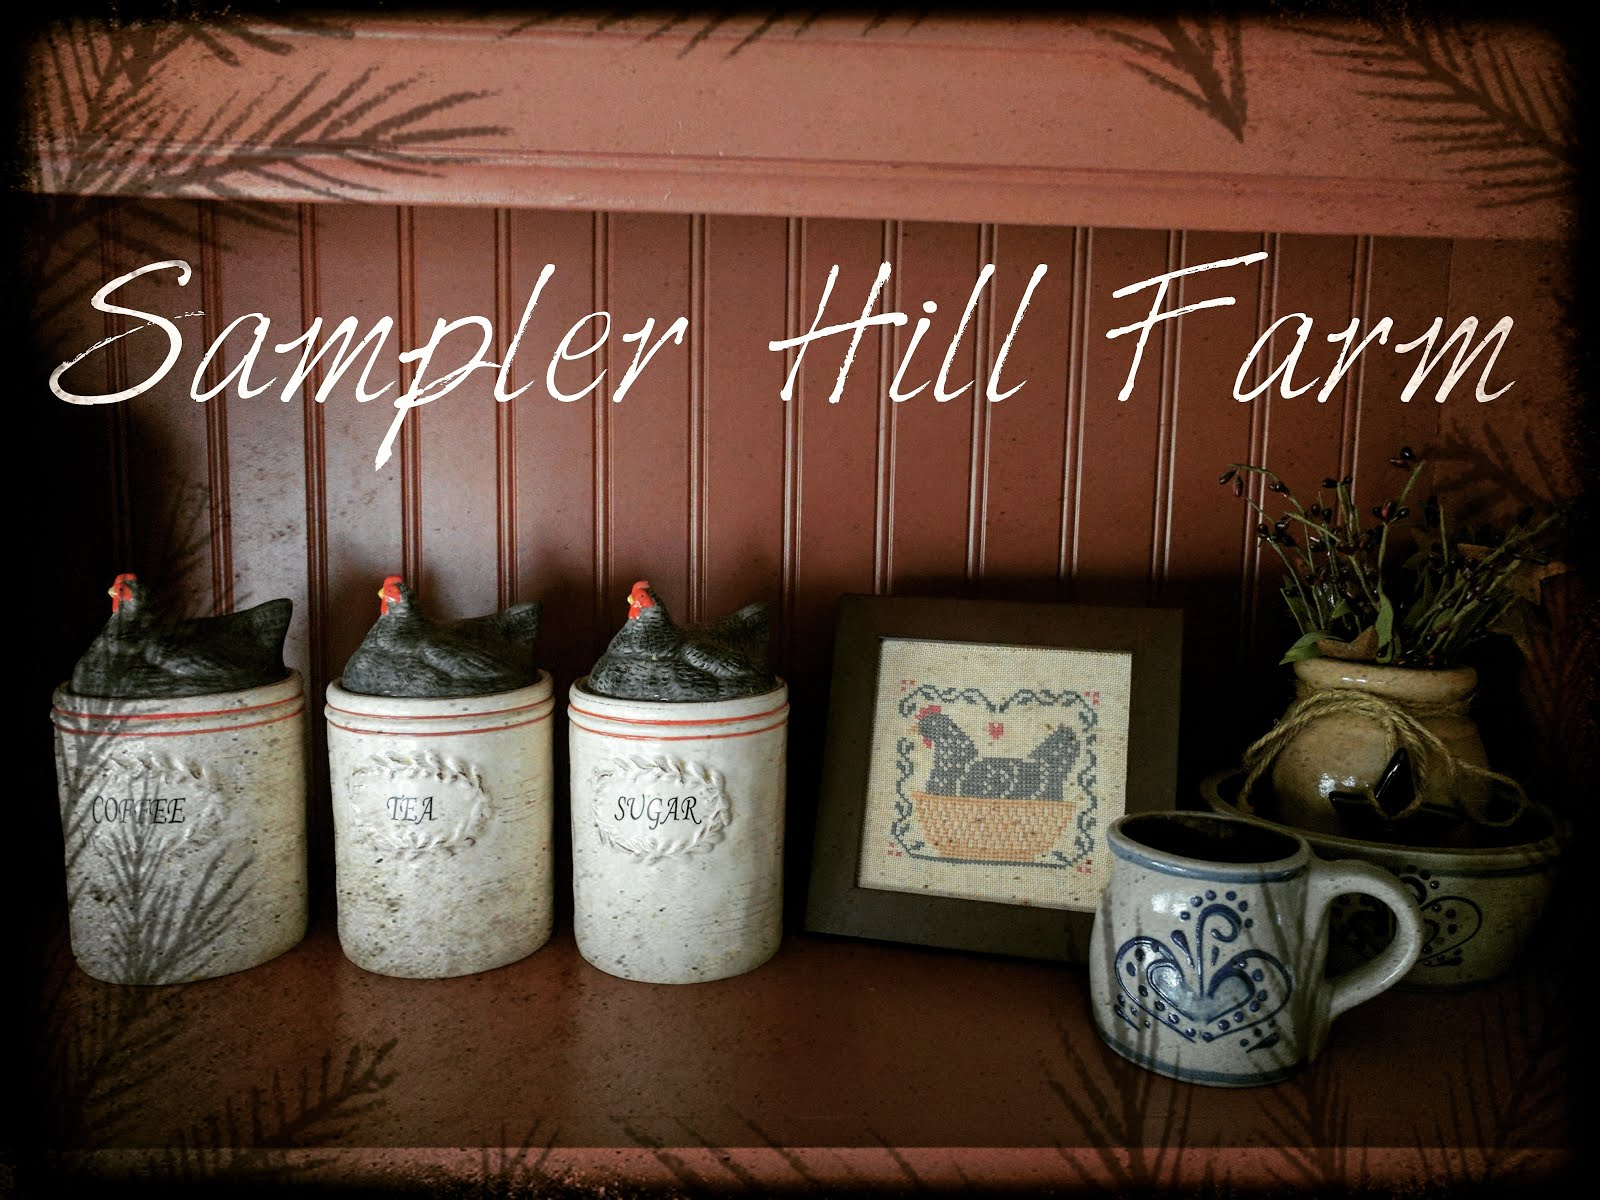 Sampler Hill Farm